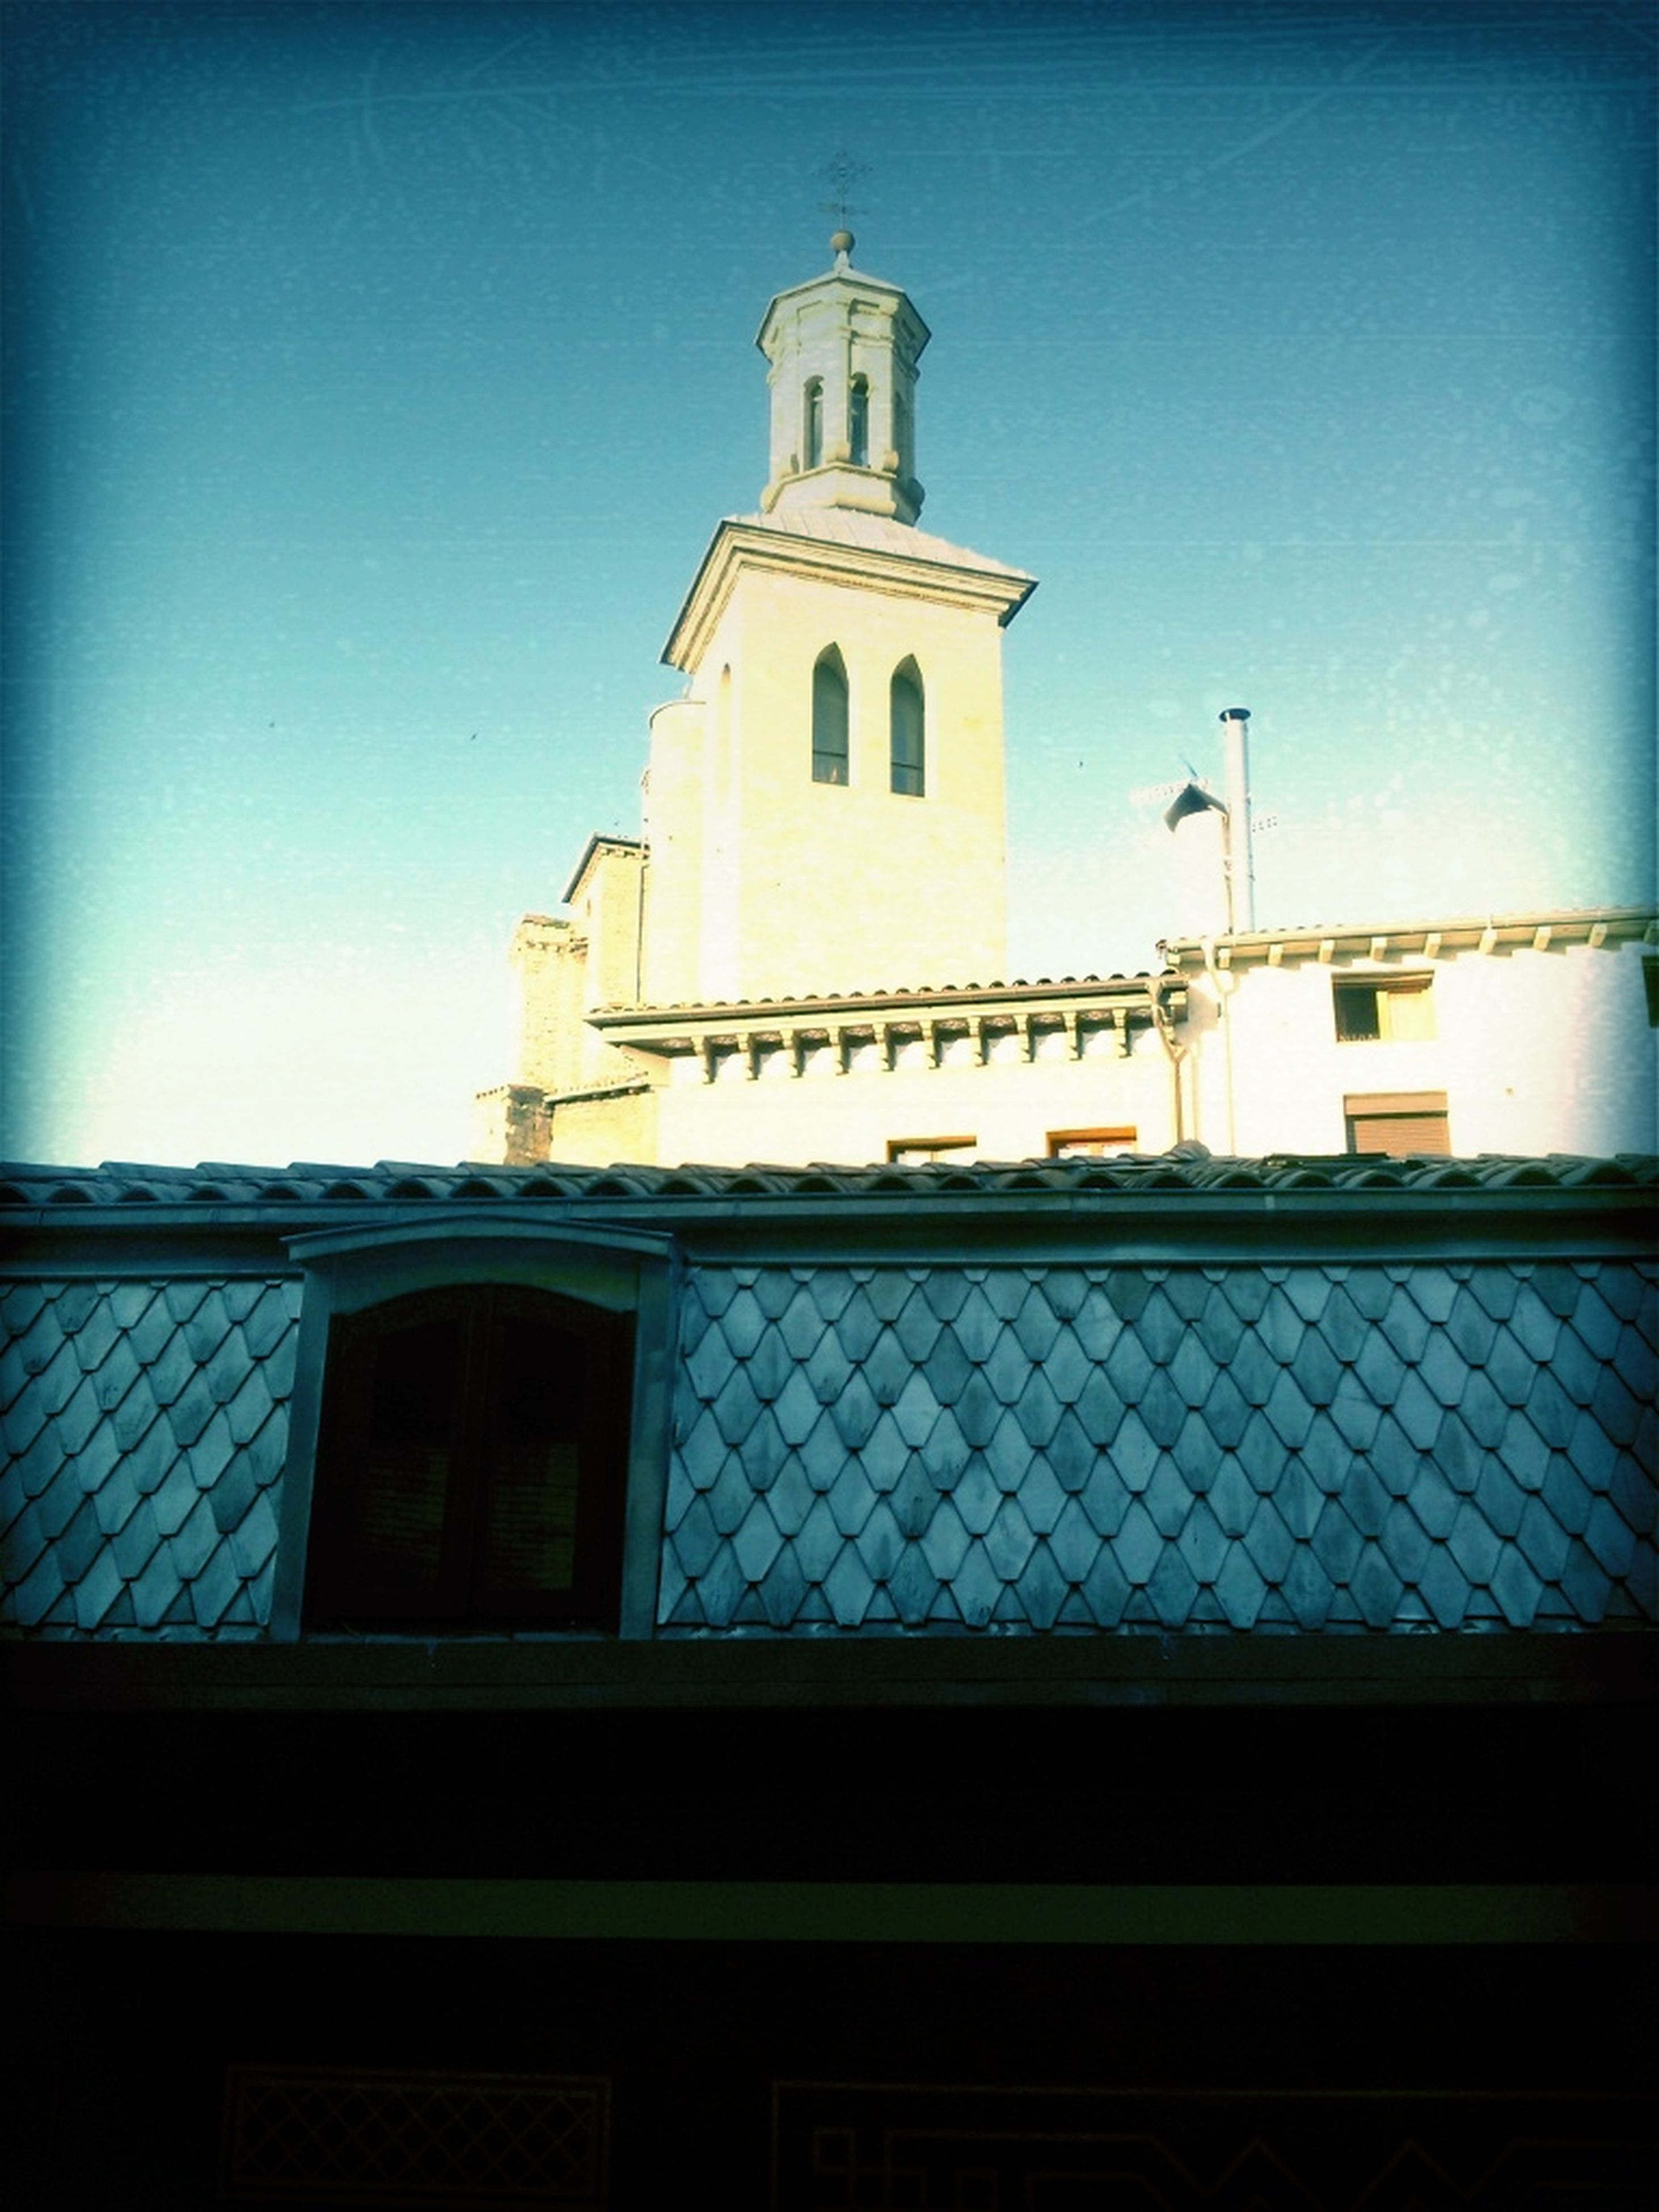 architecture, building exterior, built structure, church, religion, place of worship, clear sky, low angle view, spirituality, blue, window, cross, sunlight, house, tower, sky, copy space, day